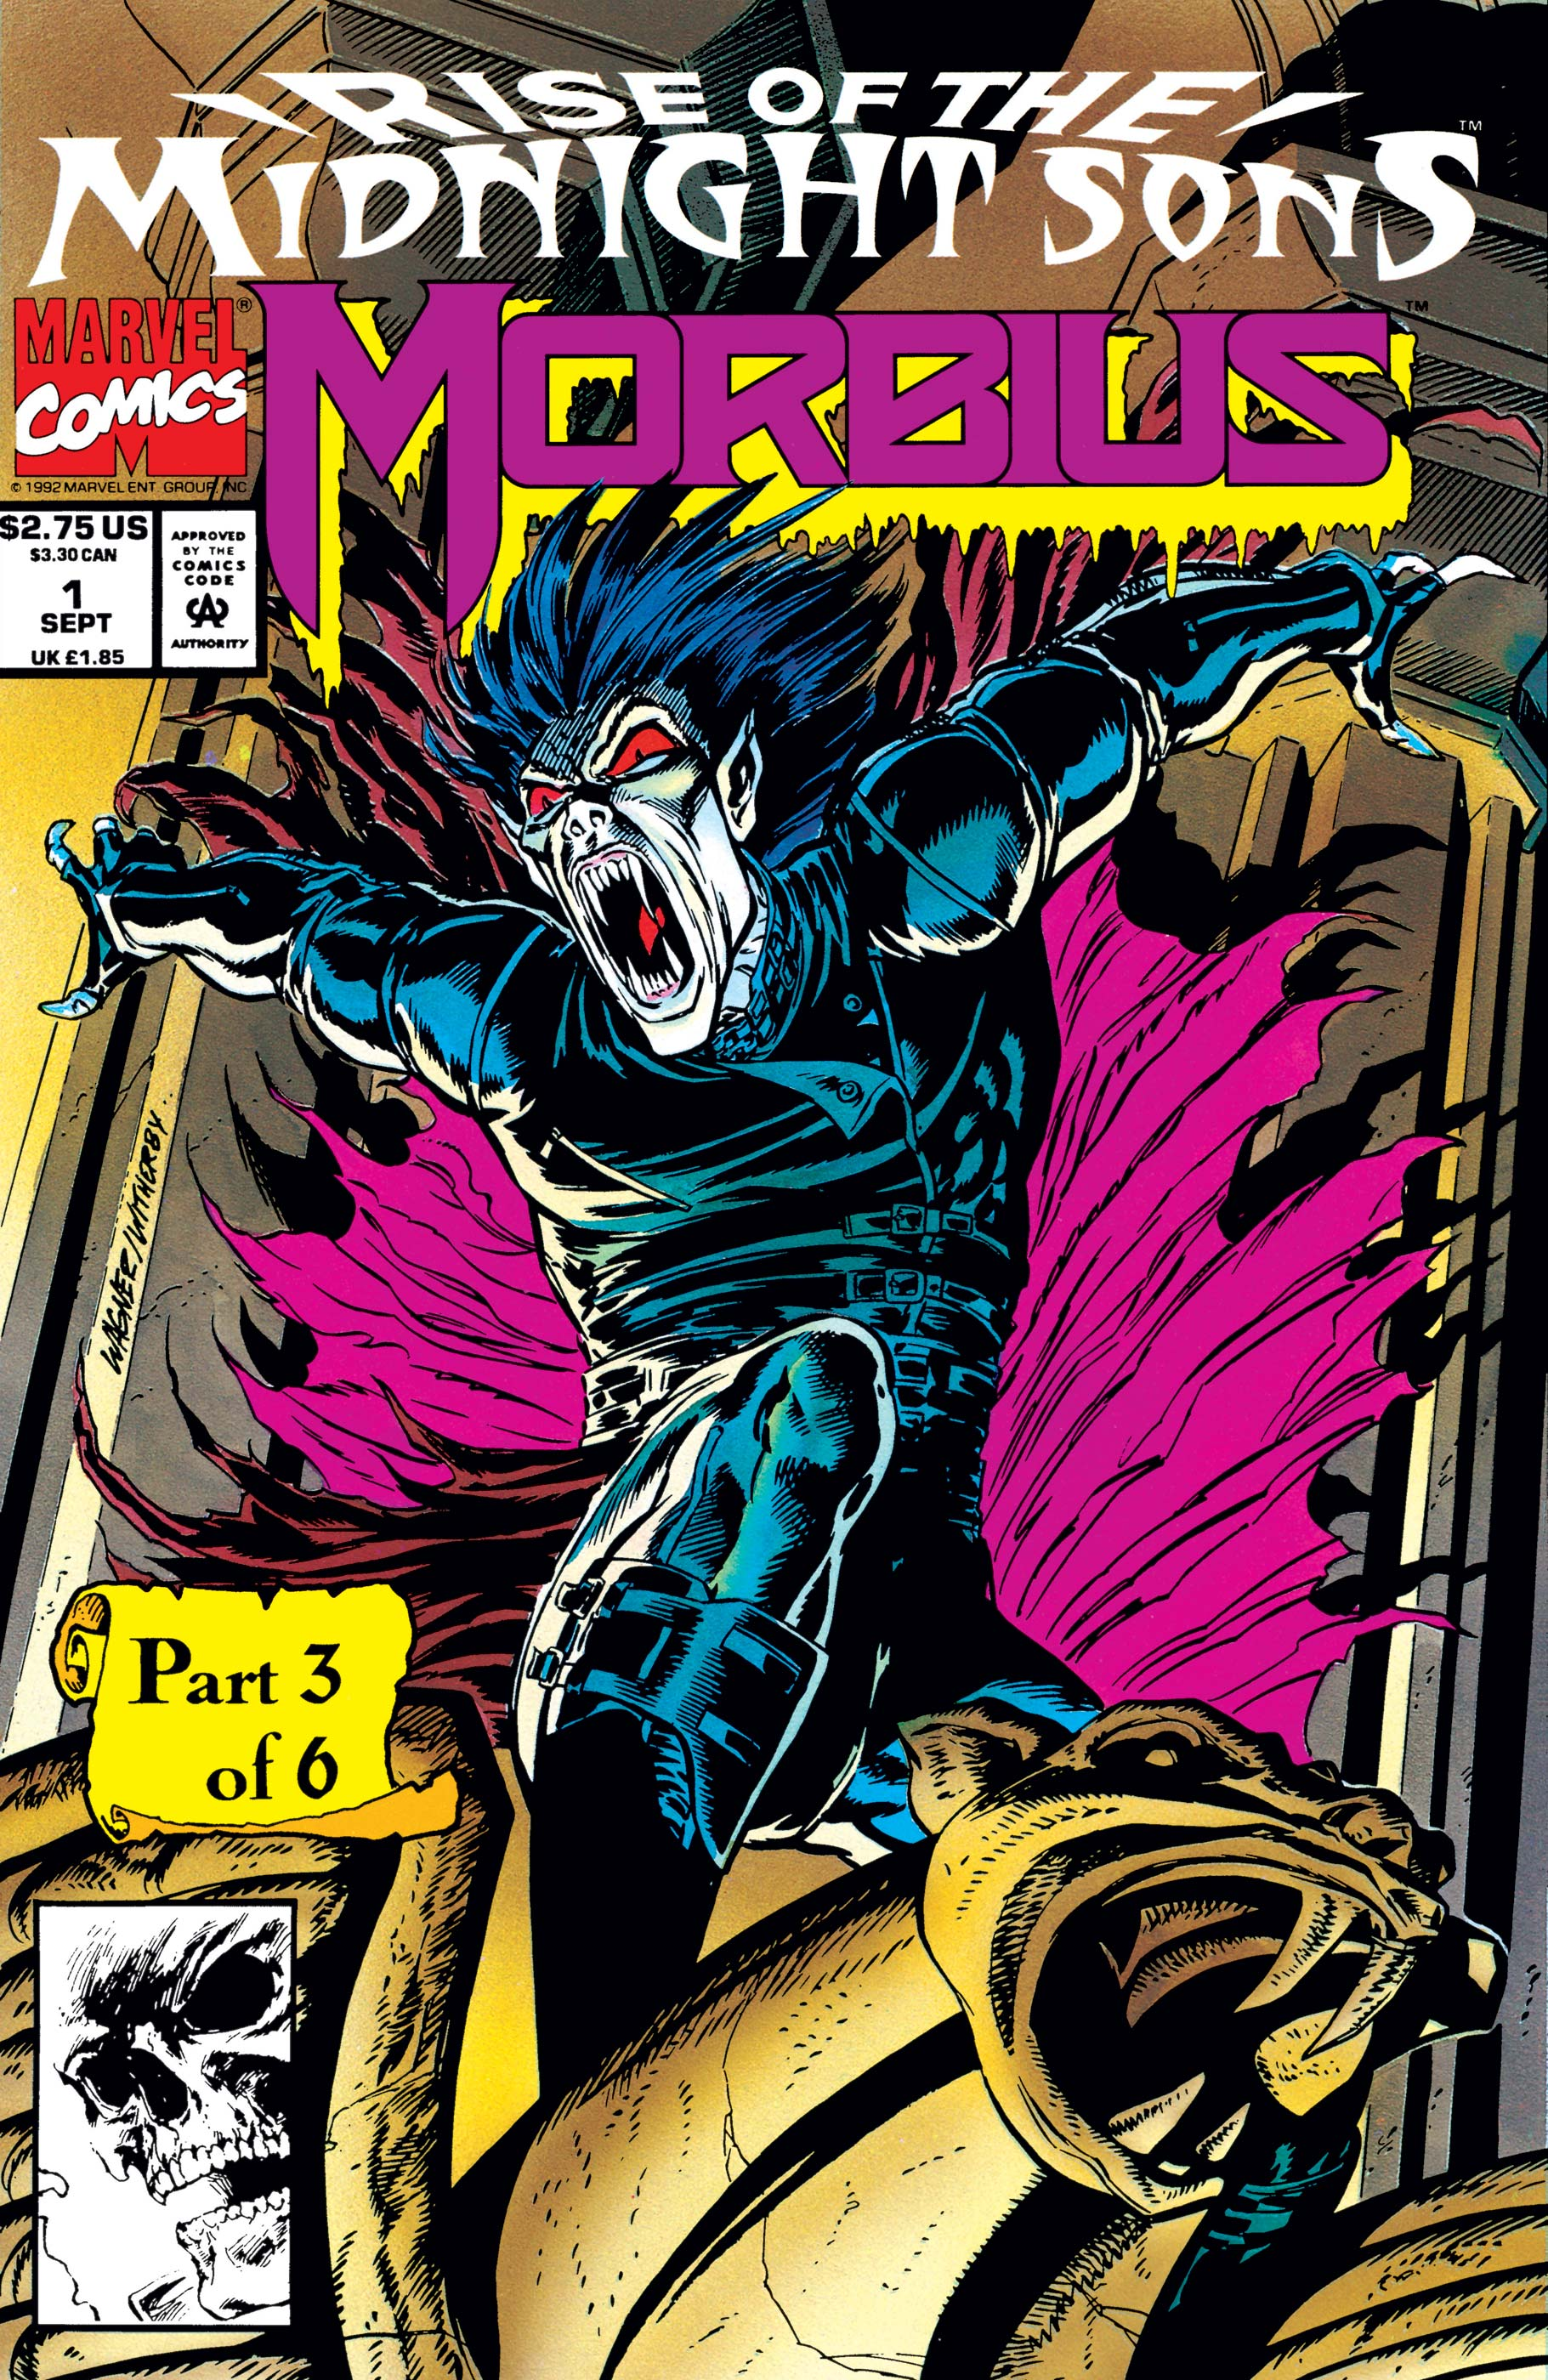 Morbius: The Living Vampire (1992) #1